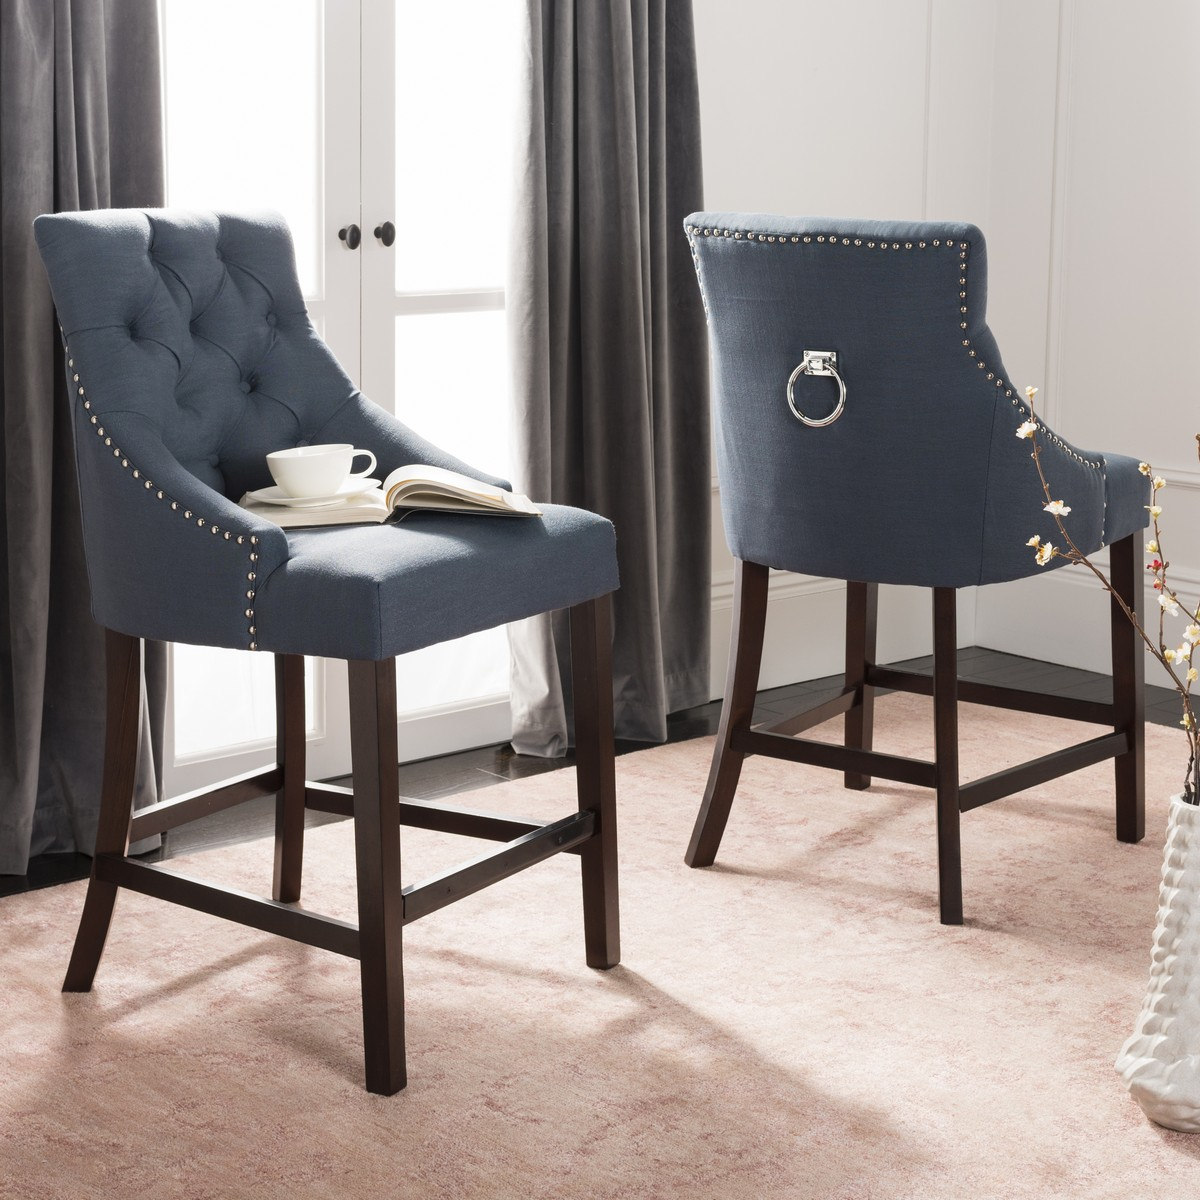 Admirable Bst6305C Set2 Counter Stools Furniture By Safavieh Alphanode Cool Chair Designs And Ideas Alphanodeonline